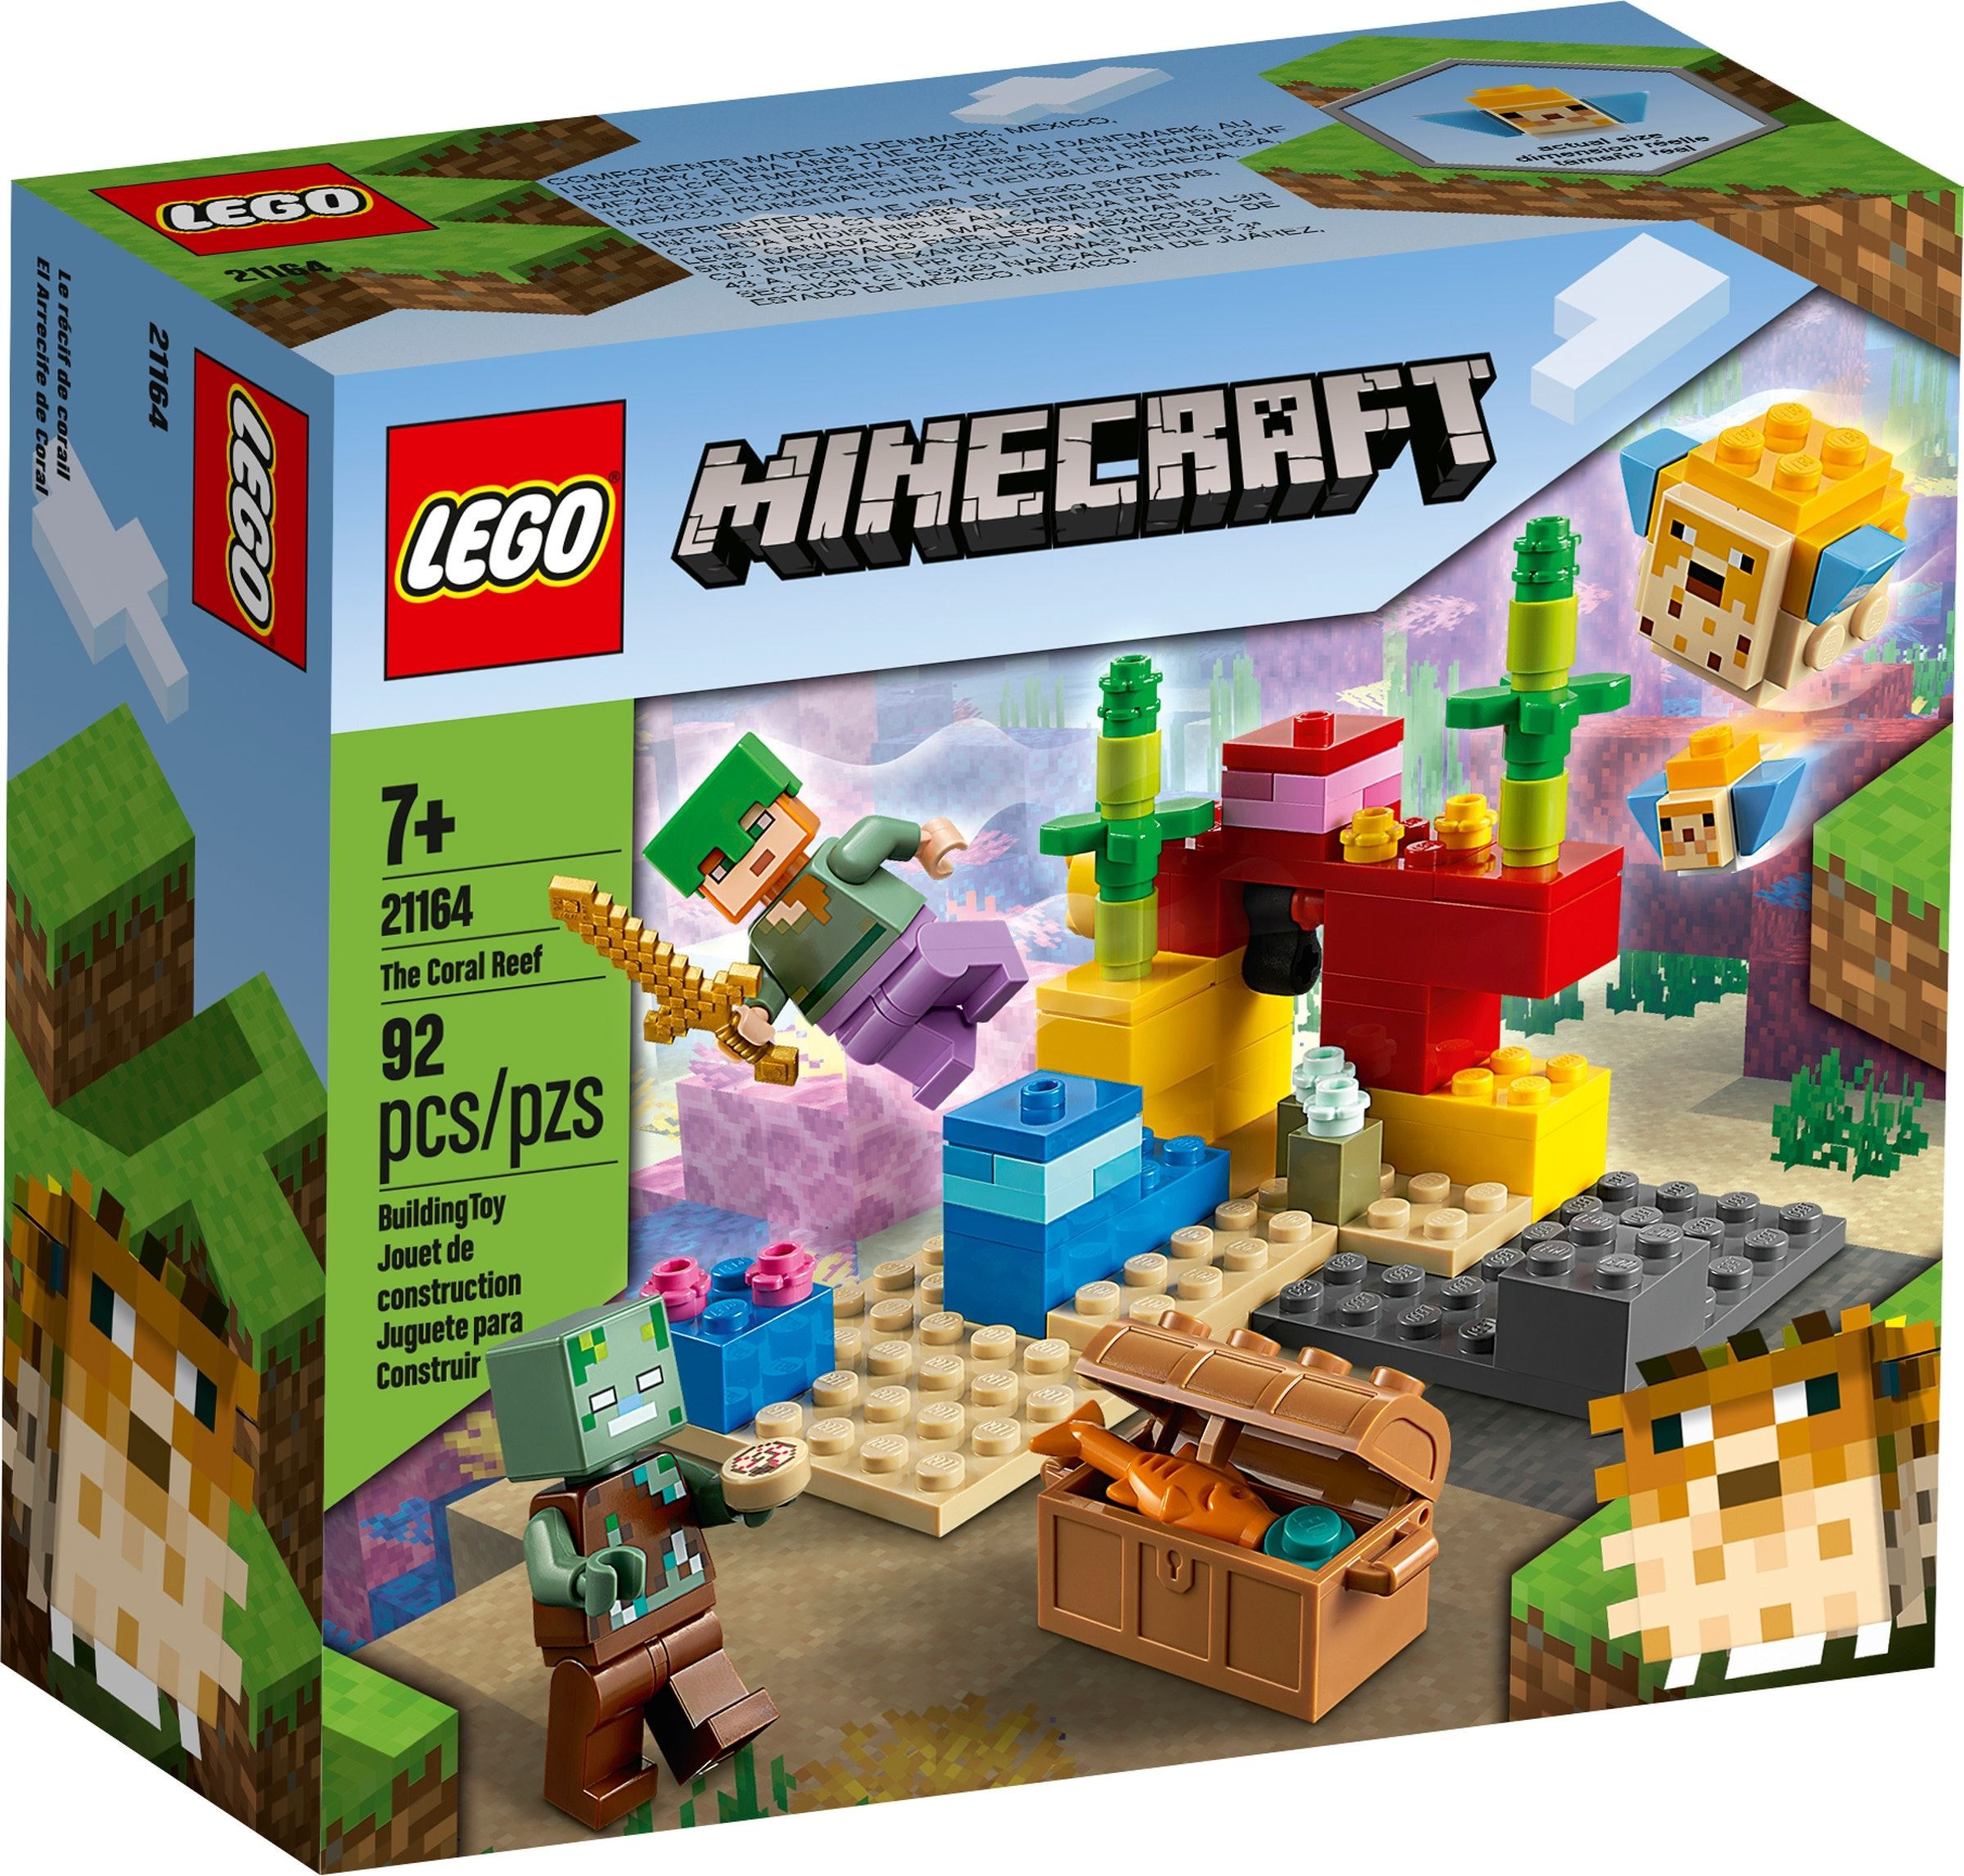 LEGO Minecraft - The Coral Reef (21164)